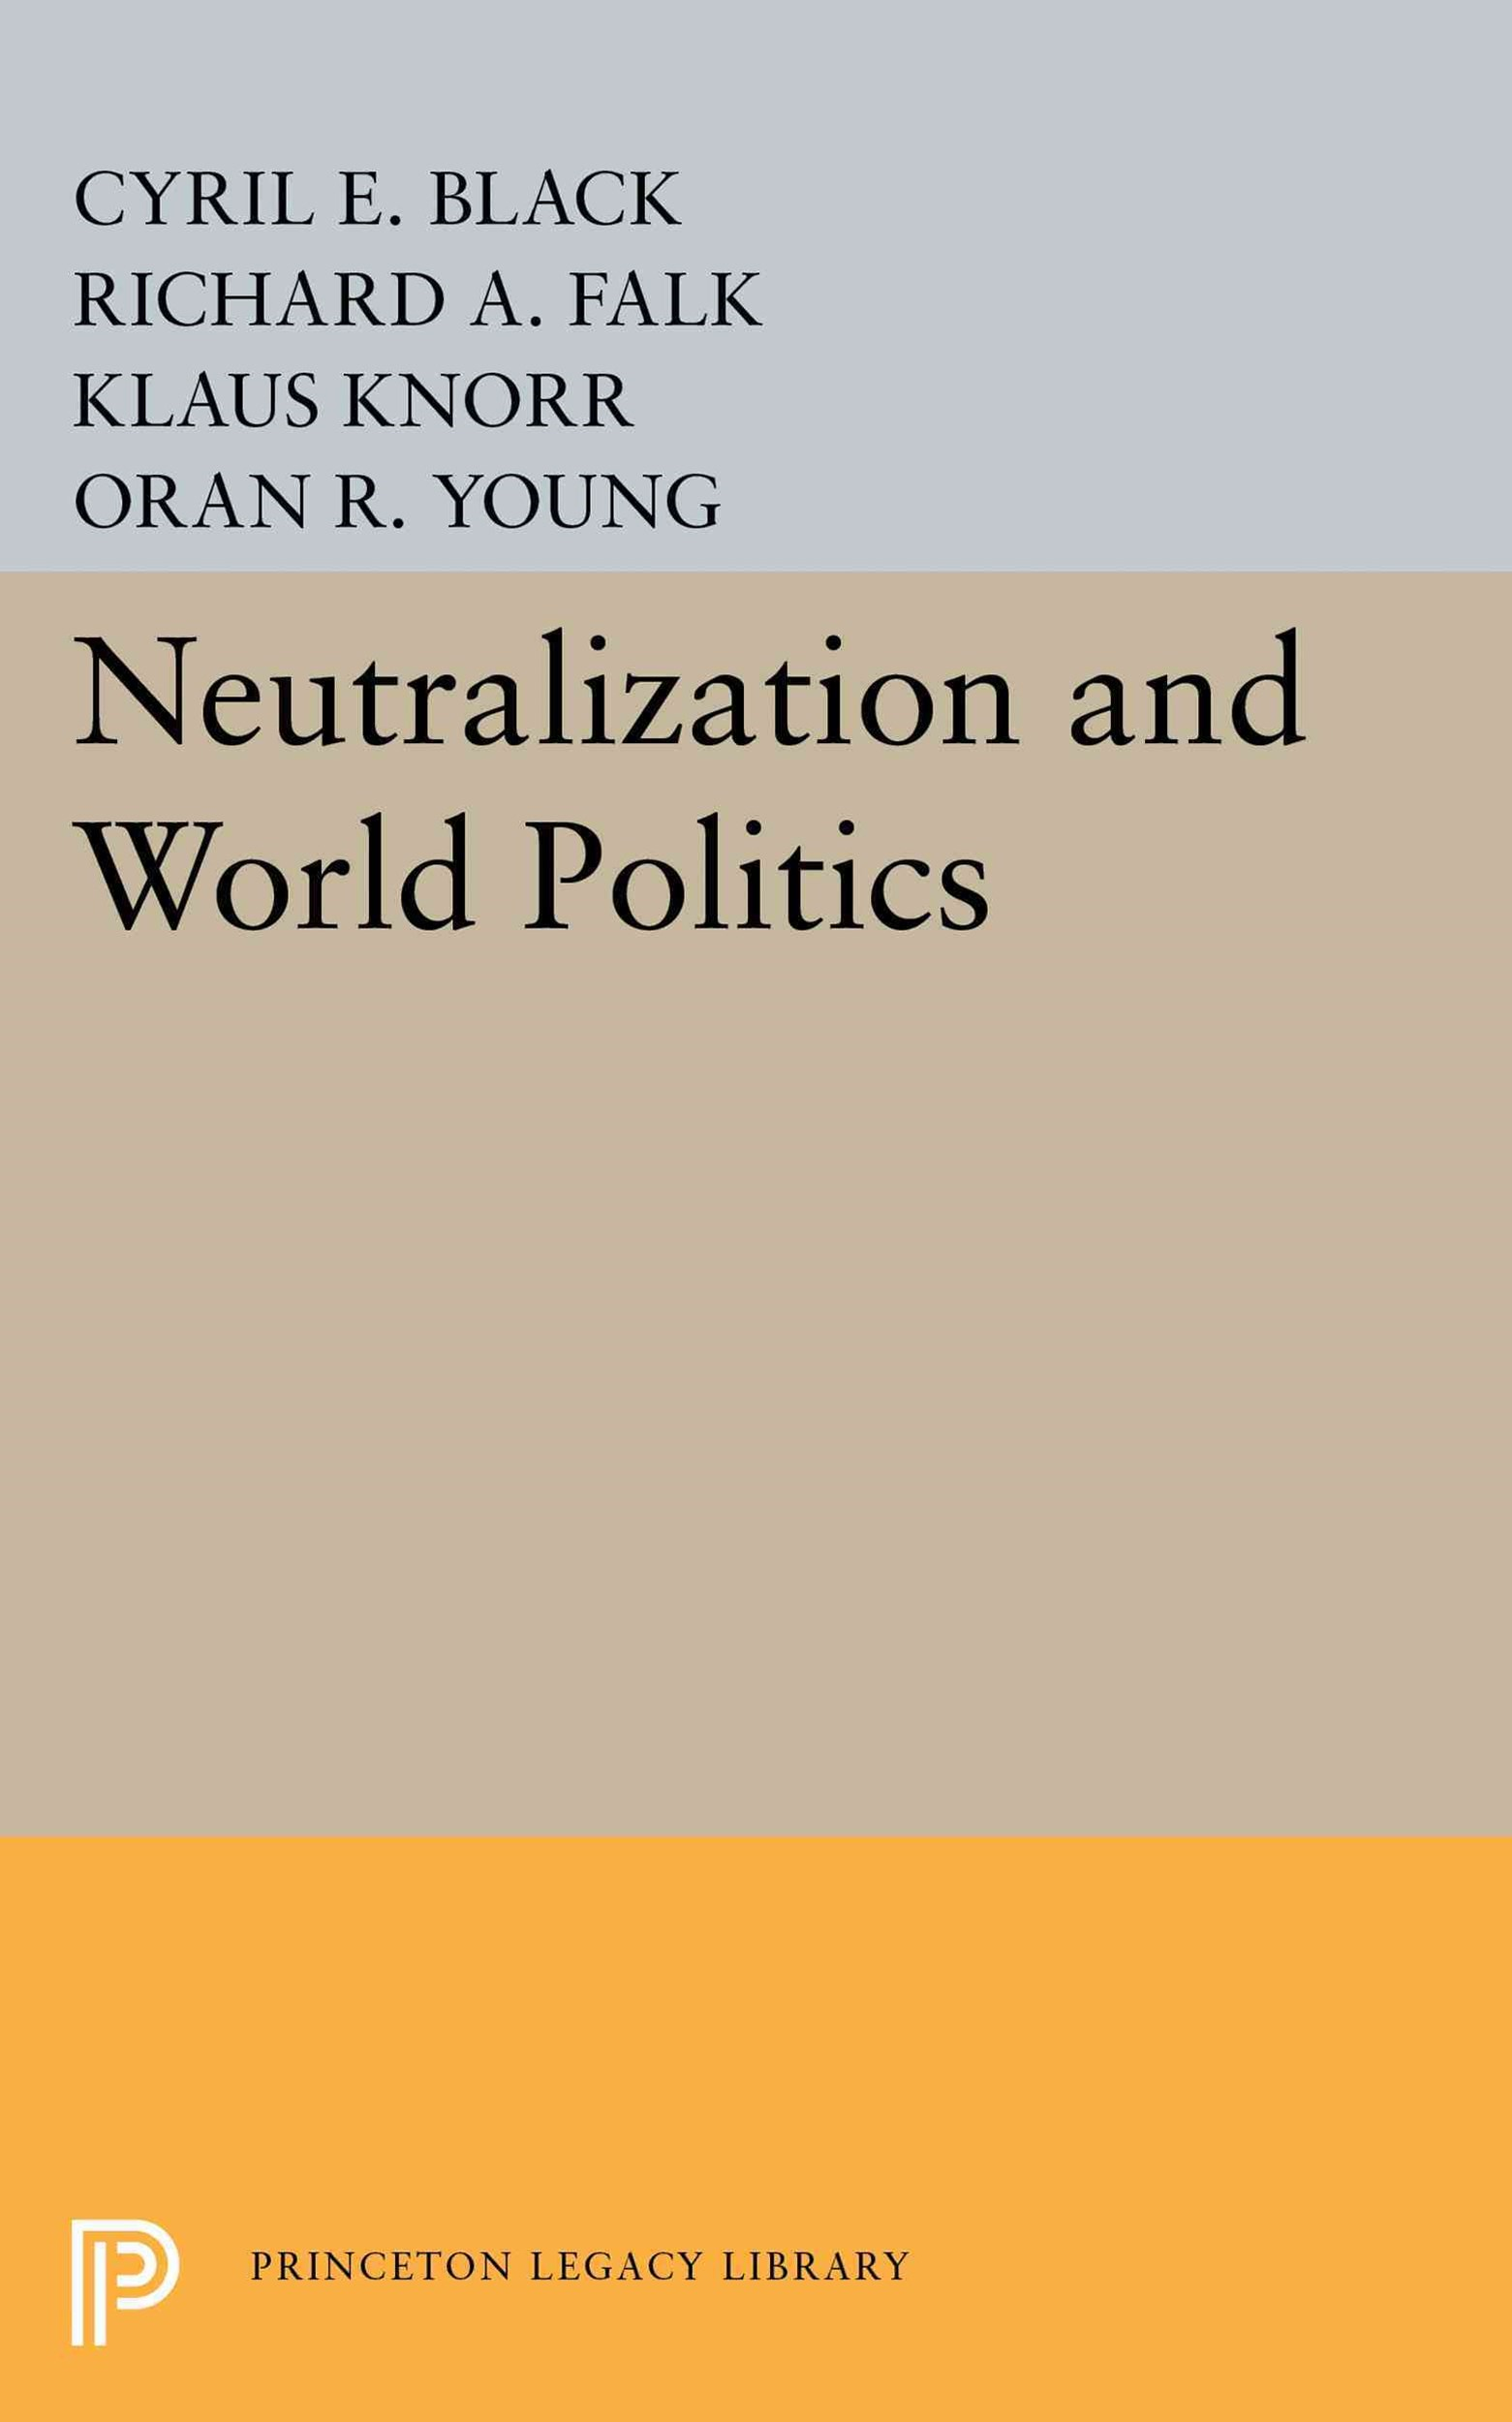 Neutralization and World Politics